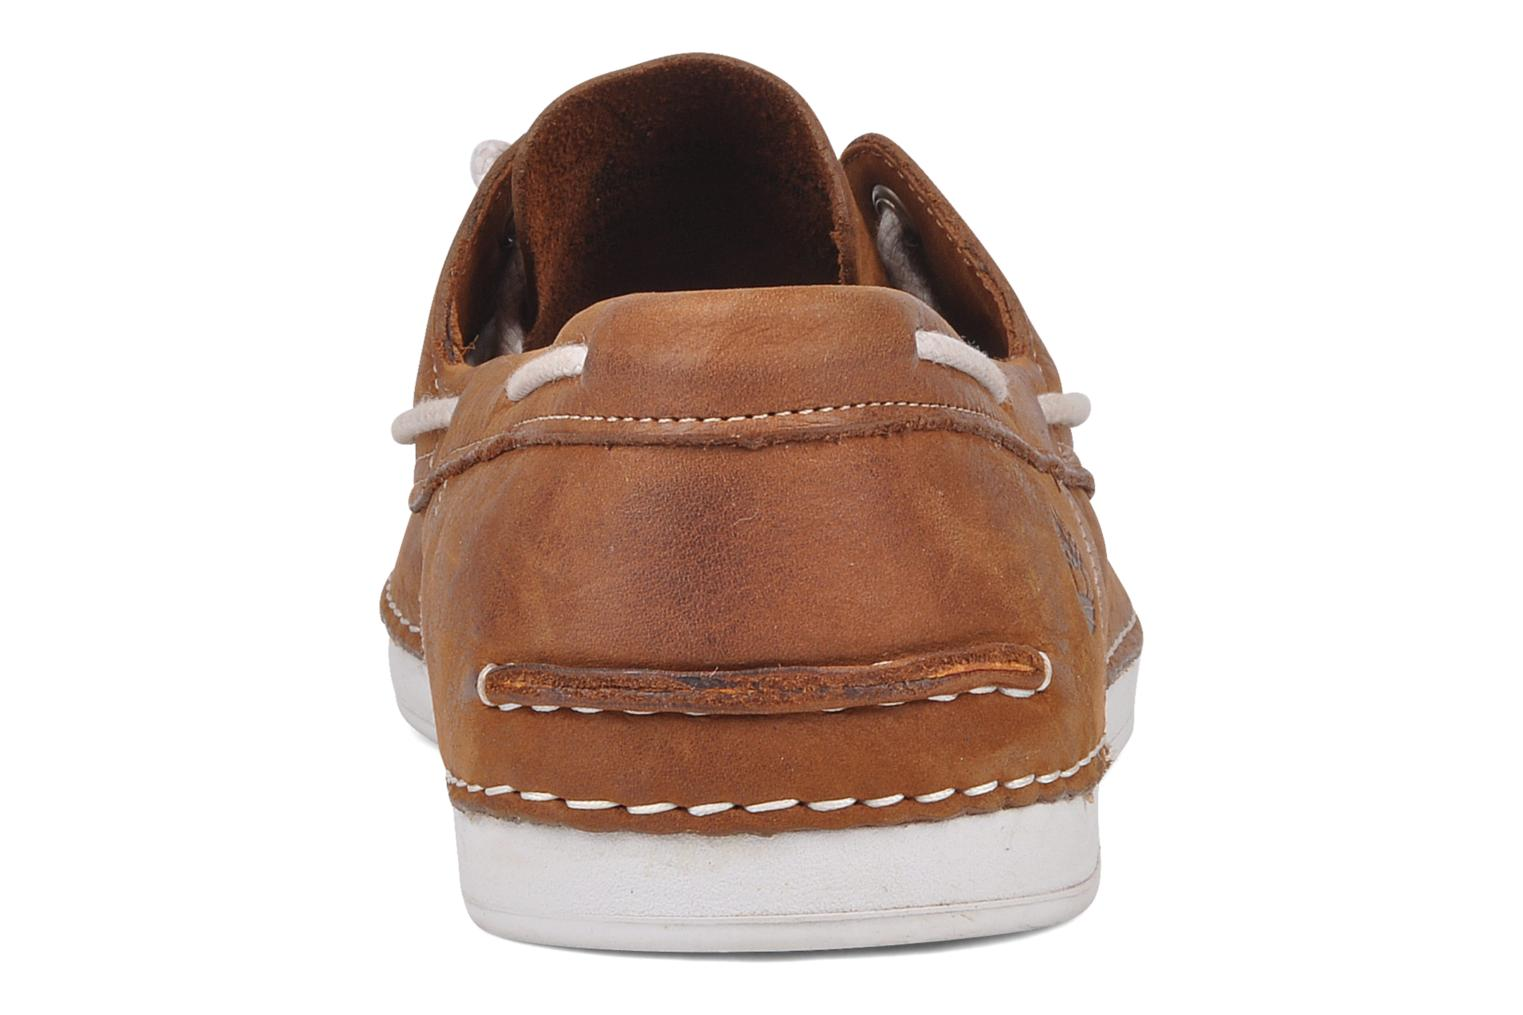 Chaussures à lacets Timberland Earthkeepers 2.0 2 eye boat Marron vue derrière